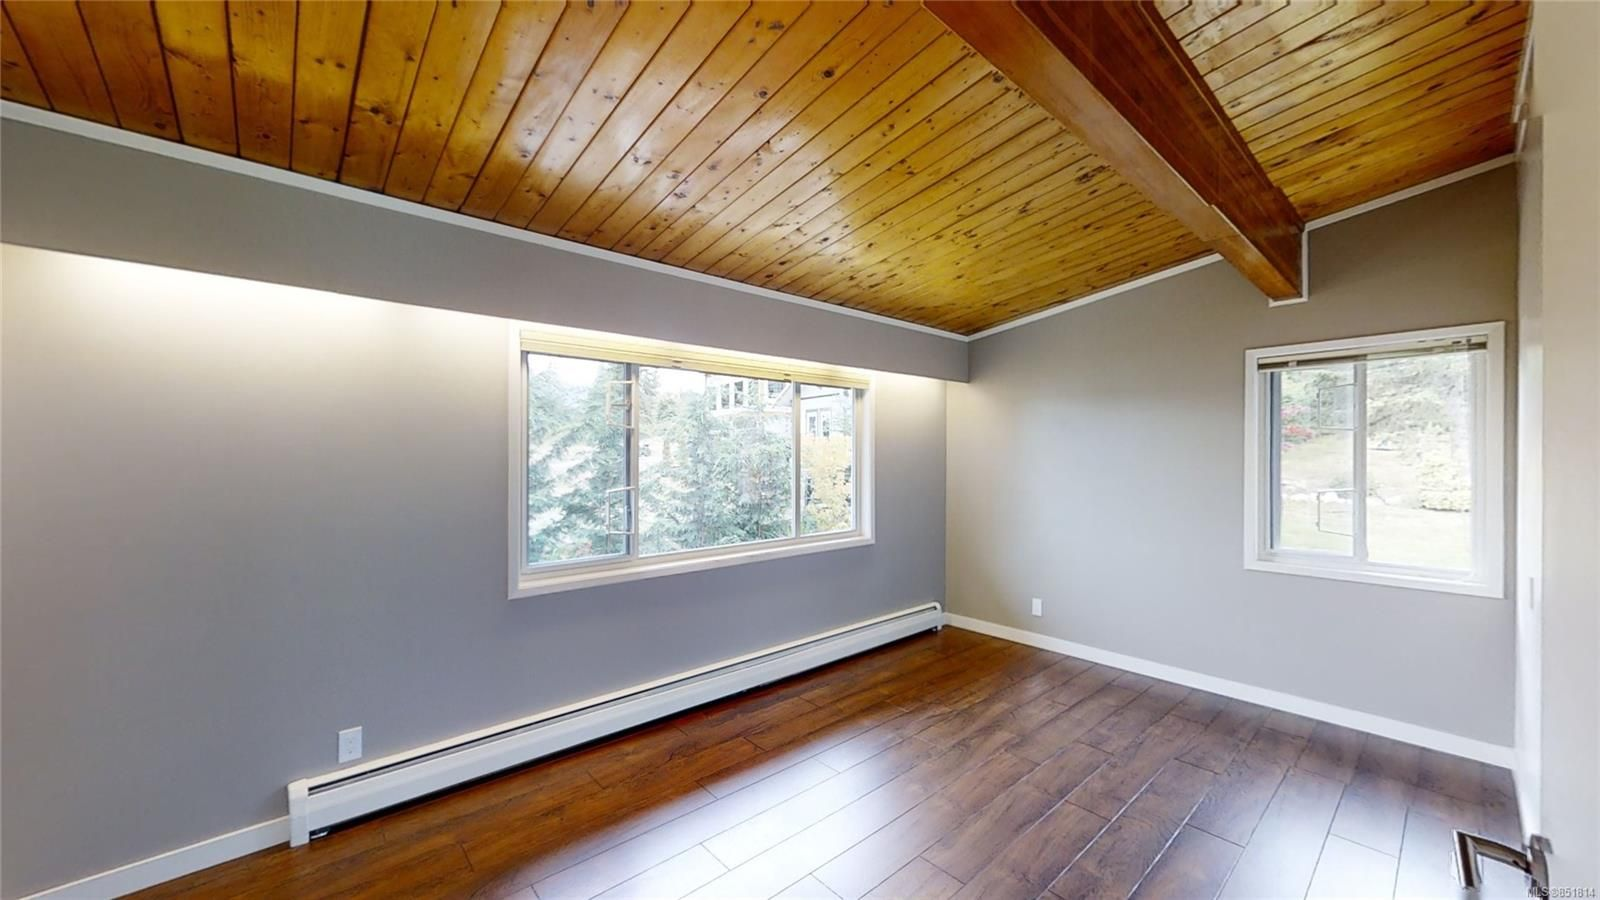 Photo 17: Photos: 191 Muschamp Rd in : CV Union Bay/Fanny Bay House for sale (Comox Valley)  : MLS®# 851814